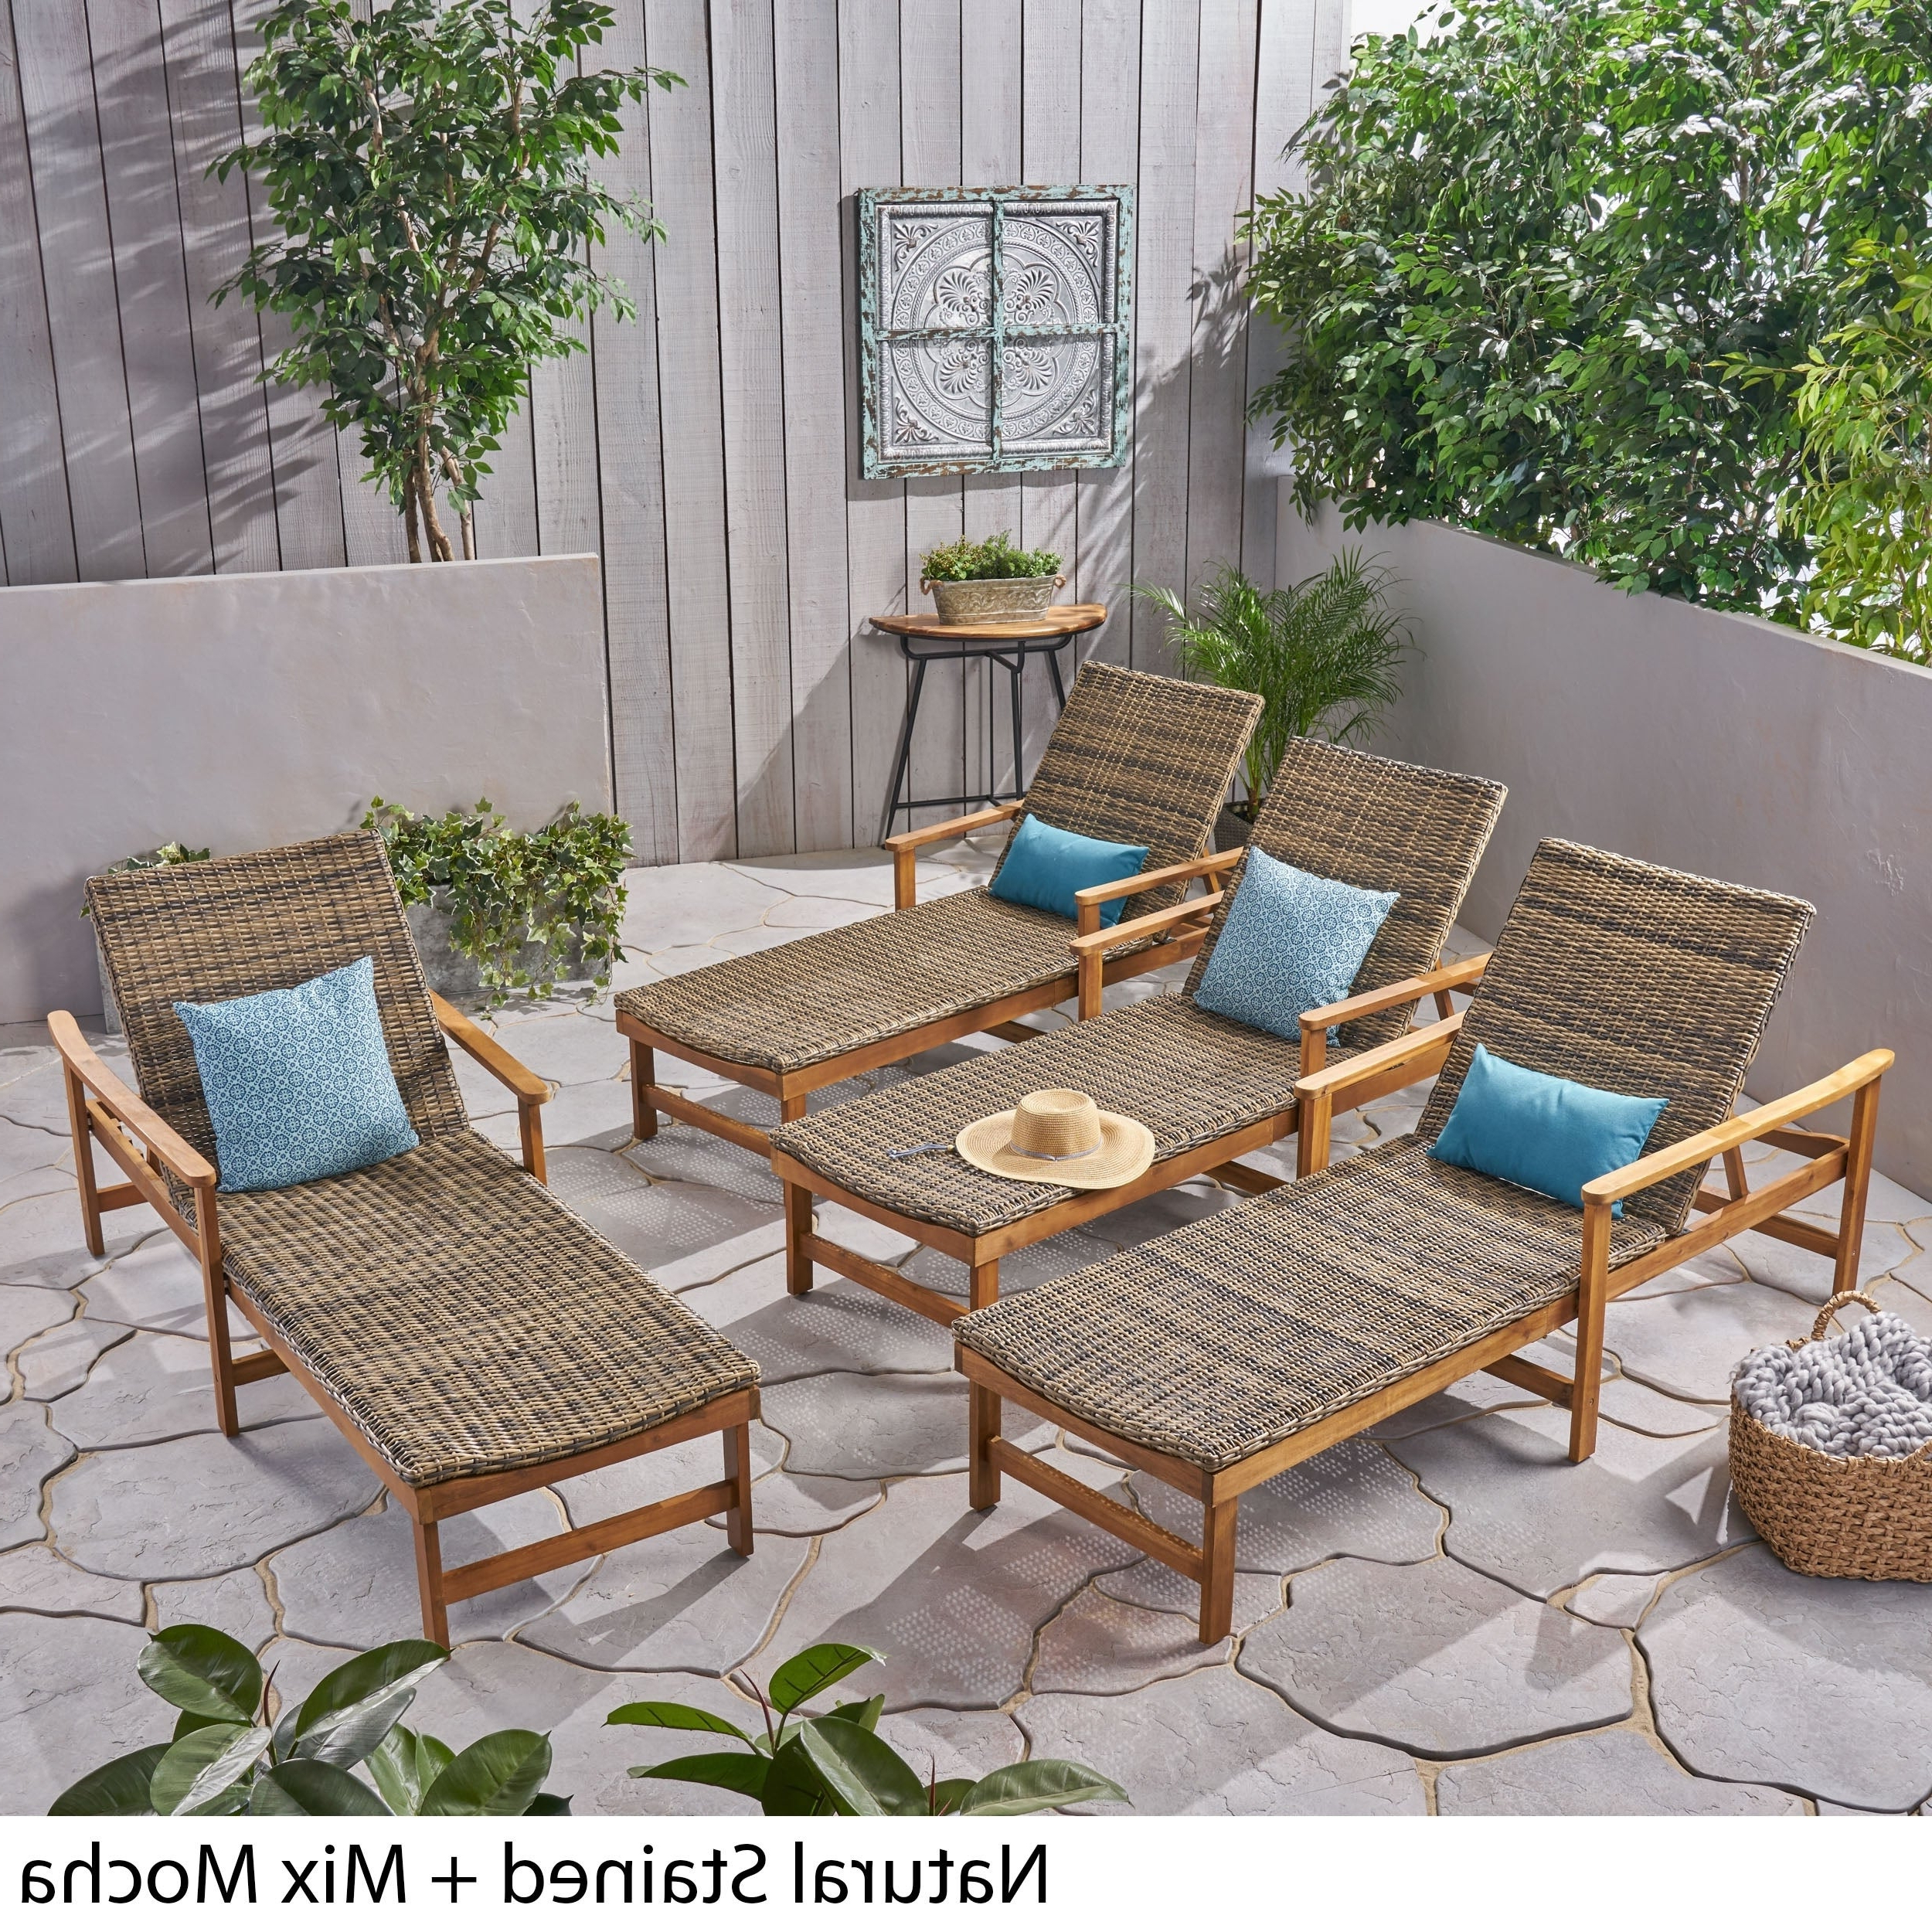 Newest Outdoor Rustic Acacia Wood Chaise Lounges With Wicker Seat Within Hampton Outdoor Acacia Wood And Wicker Chaise Lounges(Set Of 4) Christopher Knight Home (View 16 of 25)